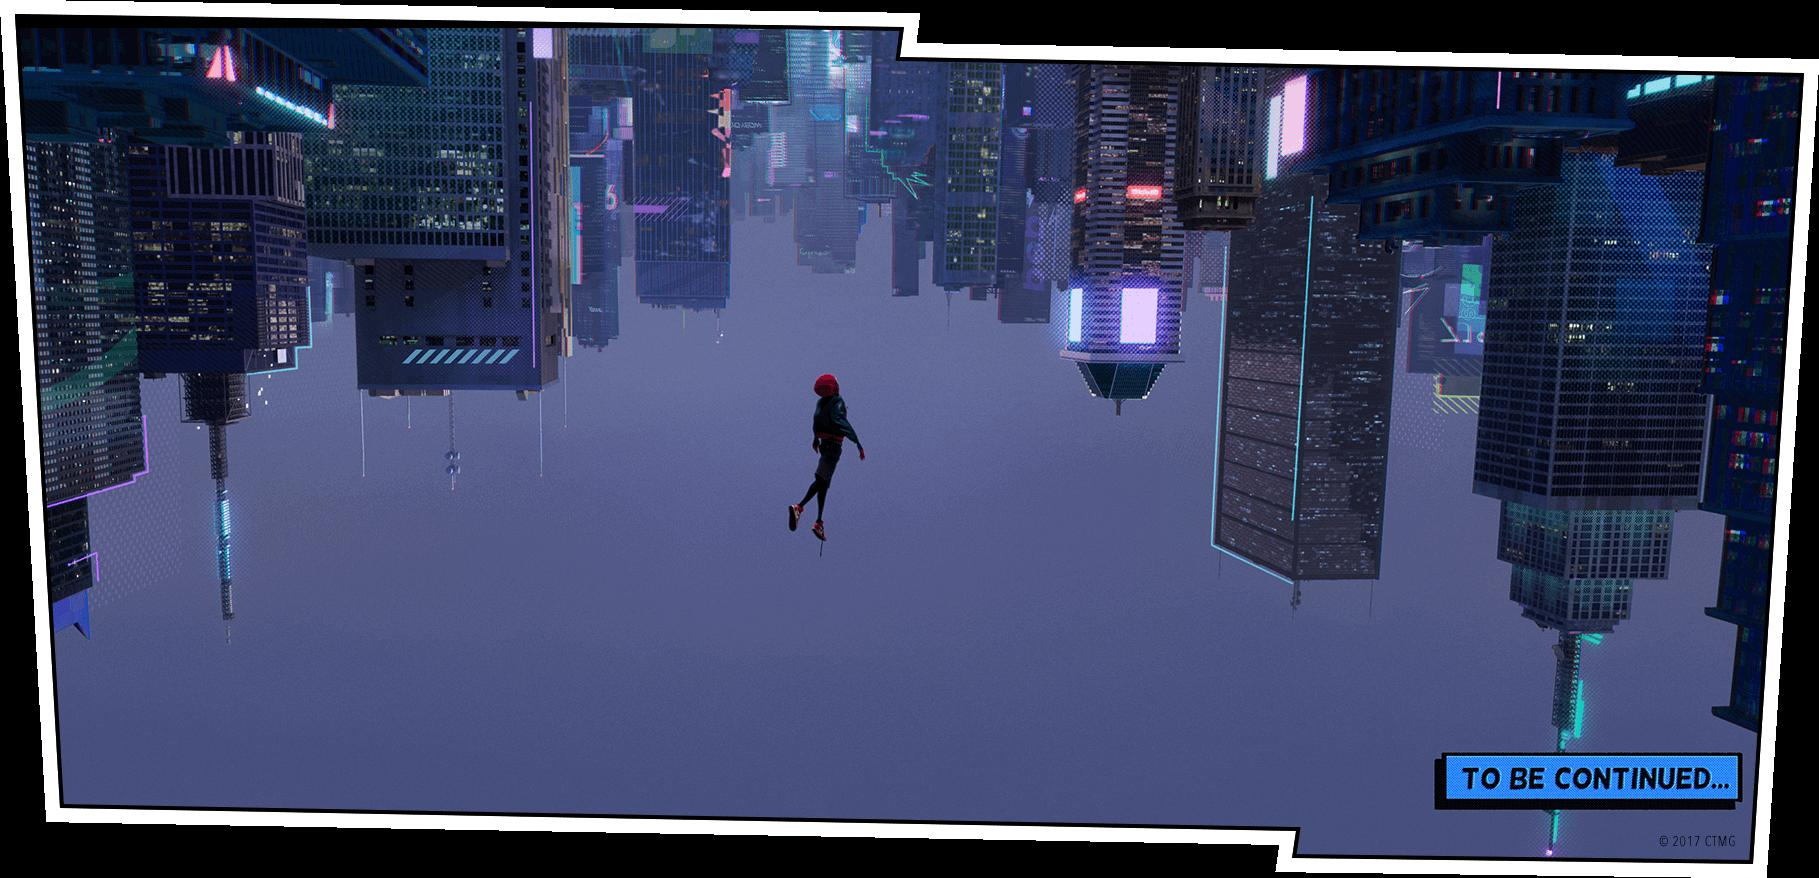 spiderman into the spiderverse 3d 2018 financial